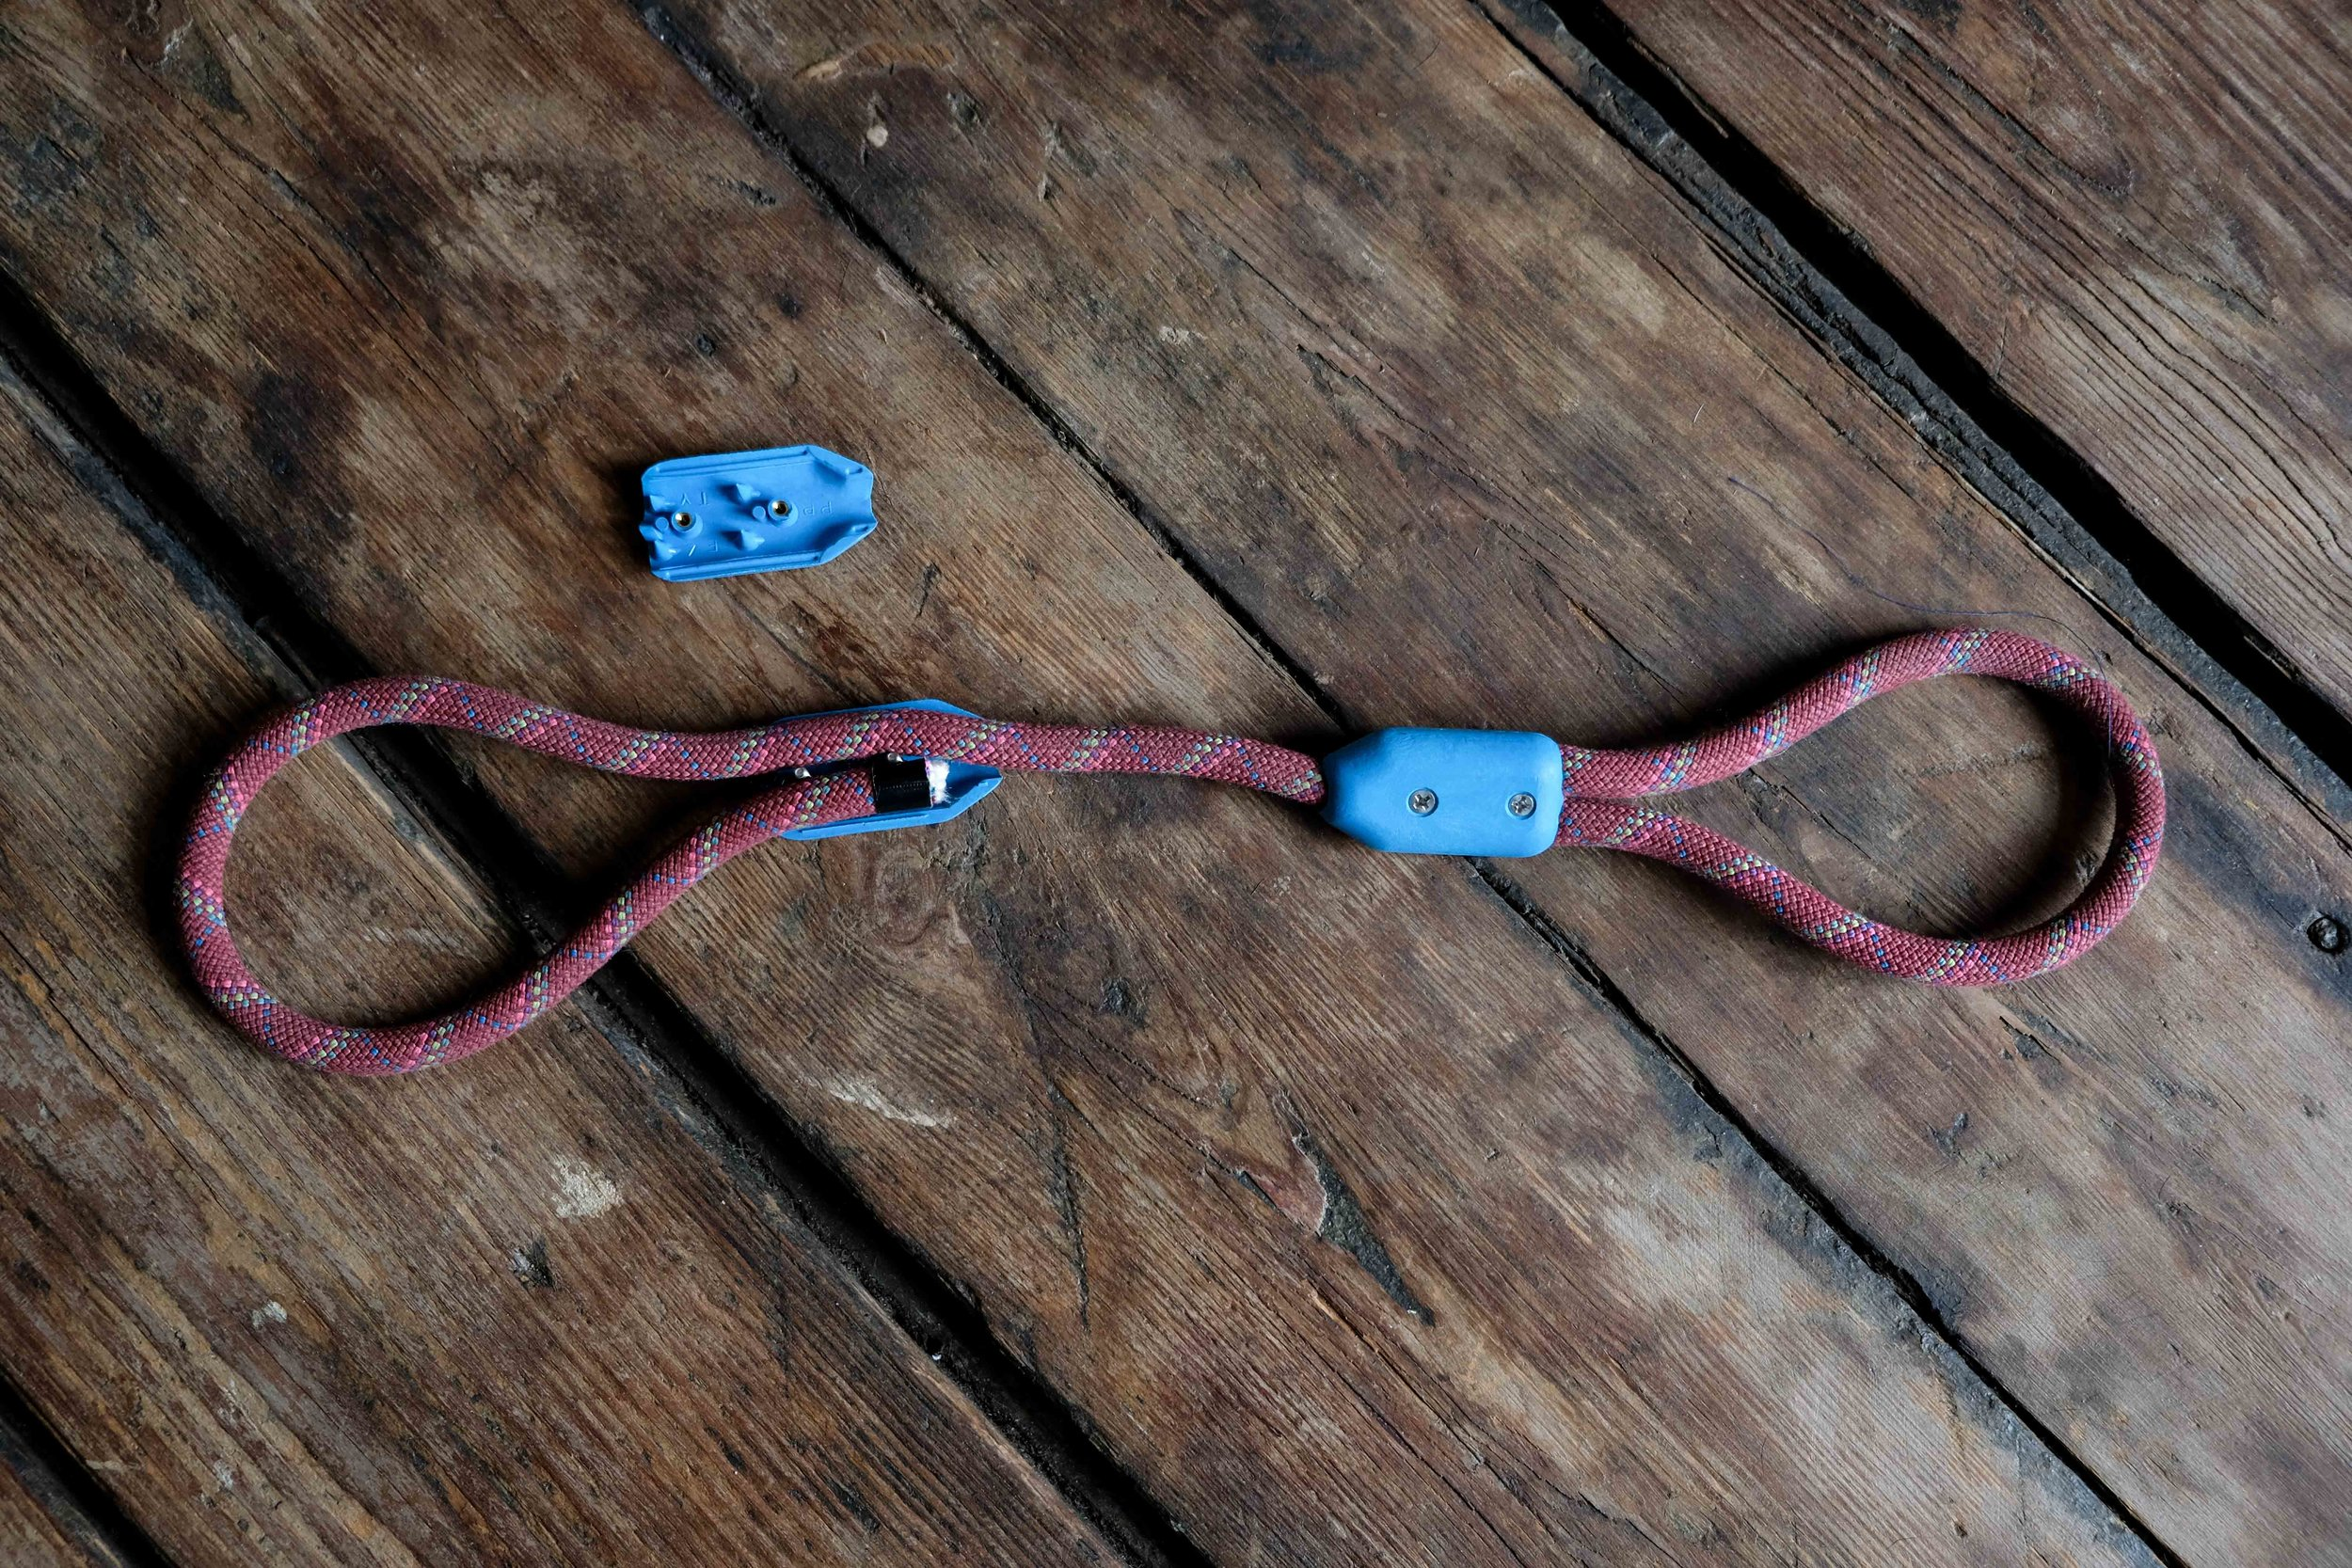 Repeat to create another loop for the tug toy. For a leash, measure out the desired length of the rope. Then feed a swivel bolt snap into a small loop, and secure with another rope clamp. We found a variety of bolt snaps  here . Make sure the bolt snap's end is large enough to fit the diameter of your rope.